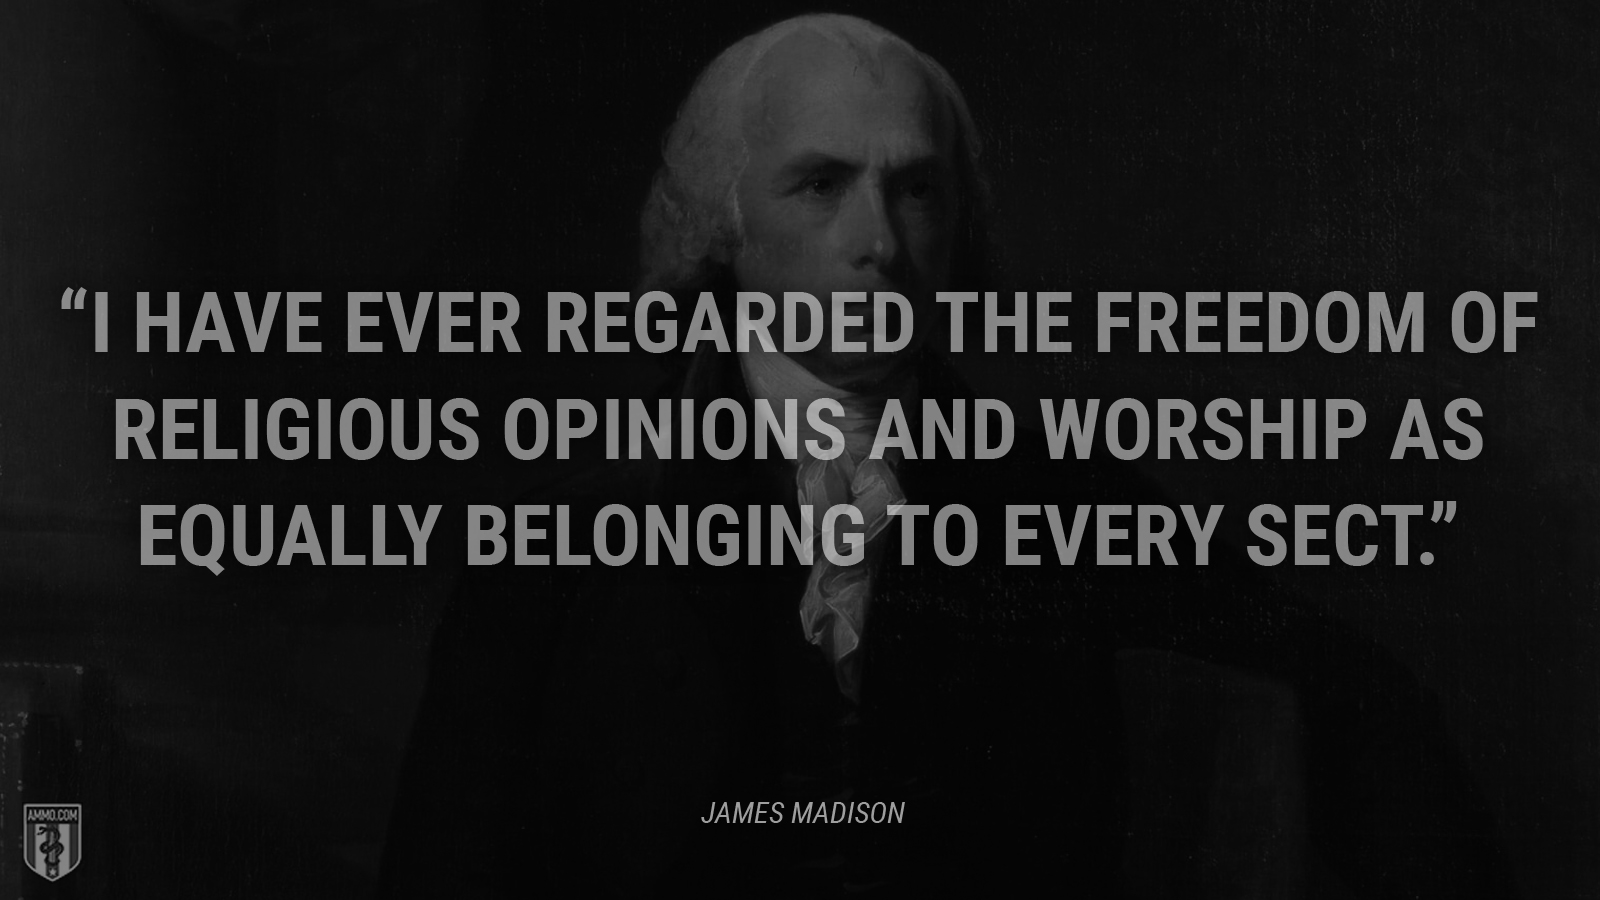 """I have ever regarded the freedom of religious opinions and worship as equally belonging to every sect."" - James Madison"